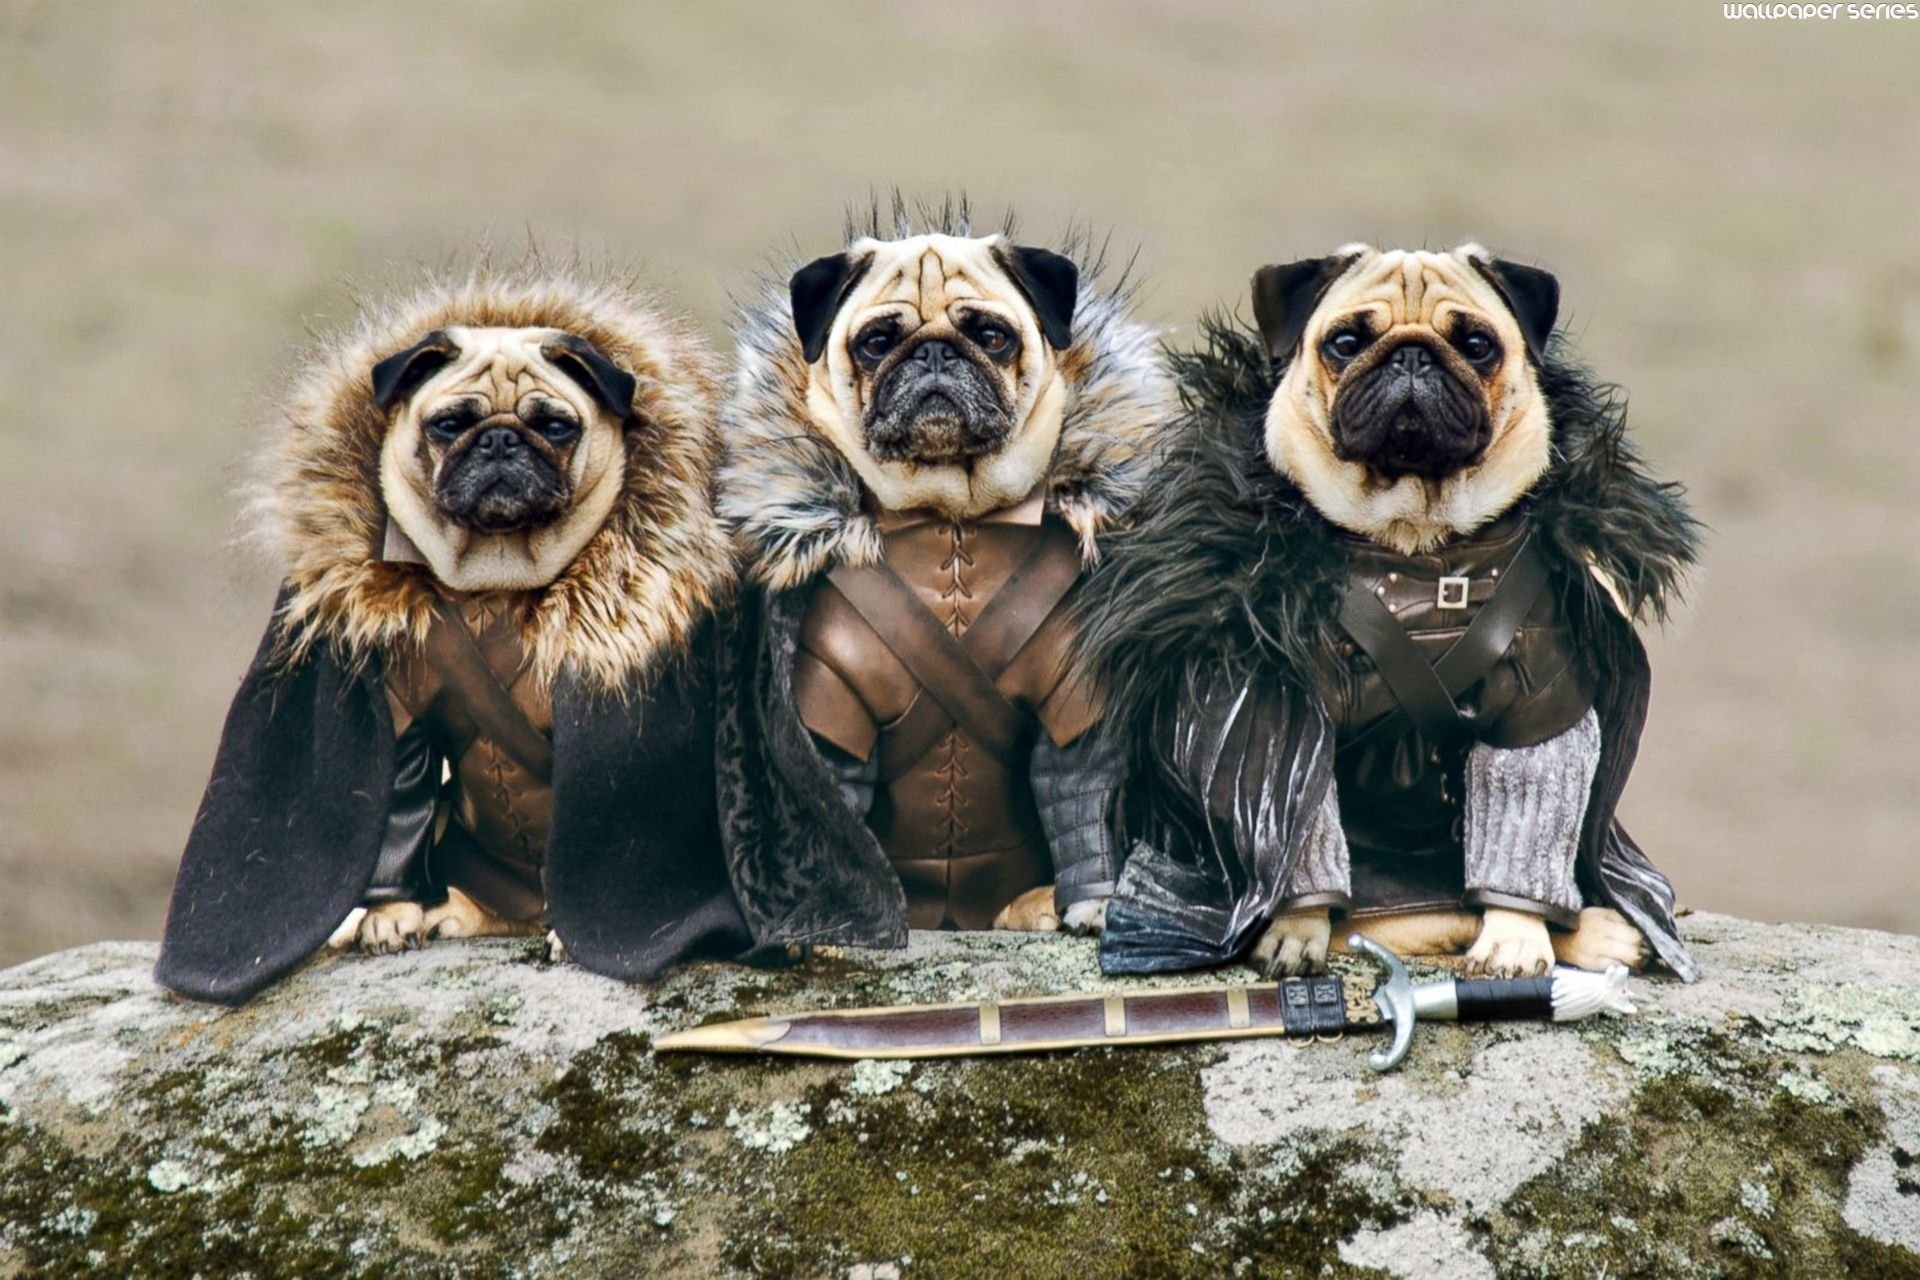 Pug Wallpapers High Resolution And Quality Download